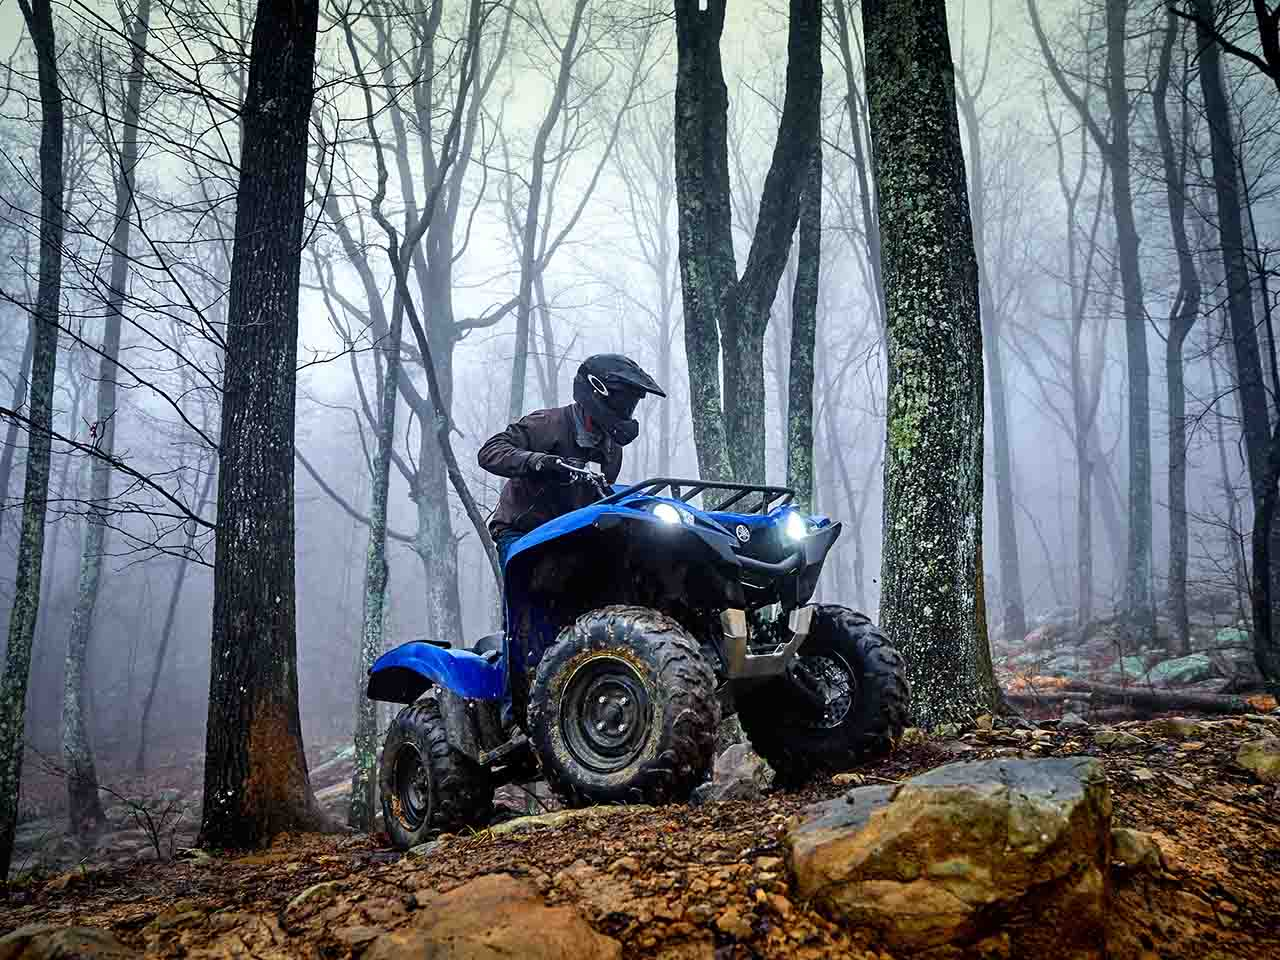 2019 Yamaha Grizzly 700 Gallery 2